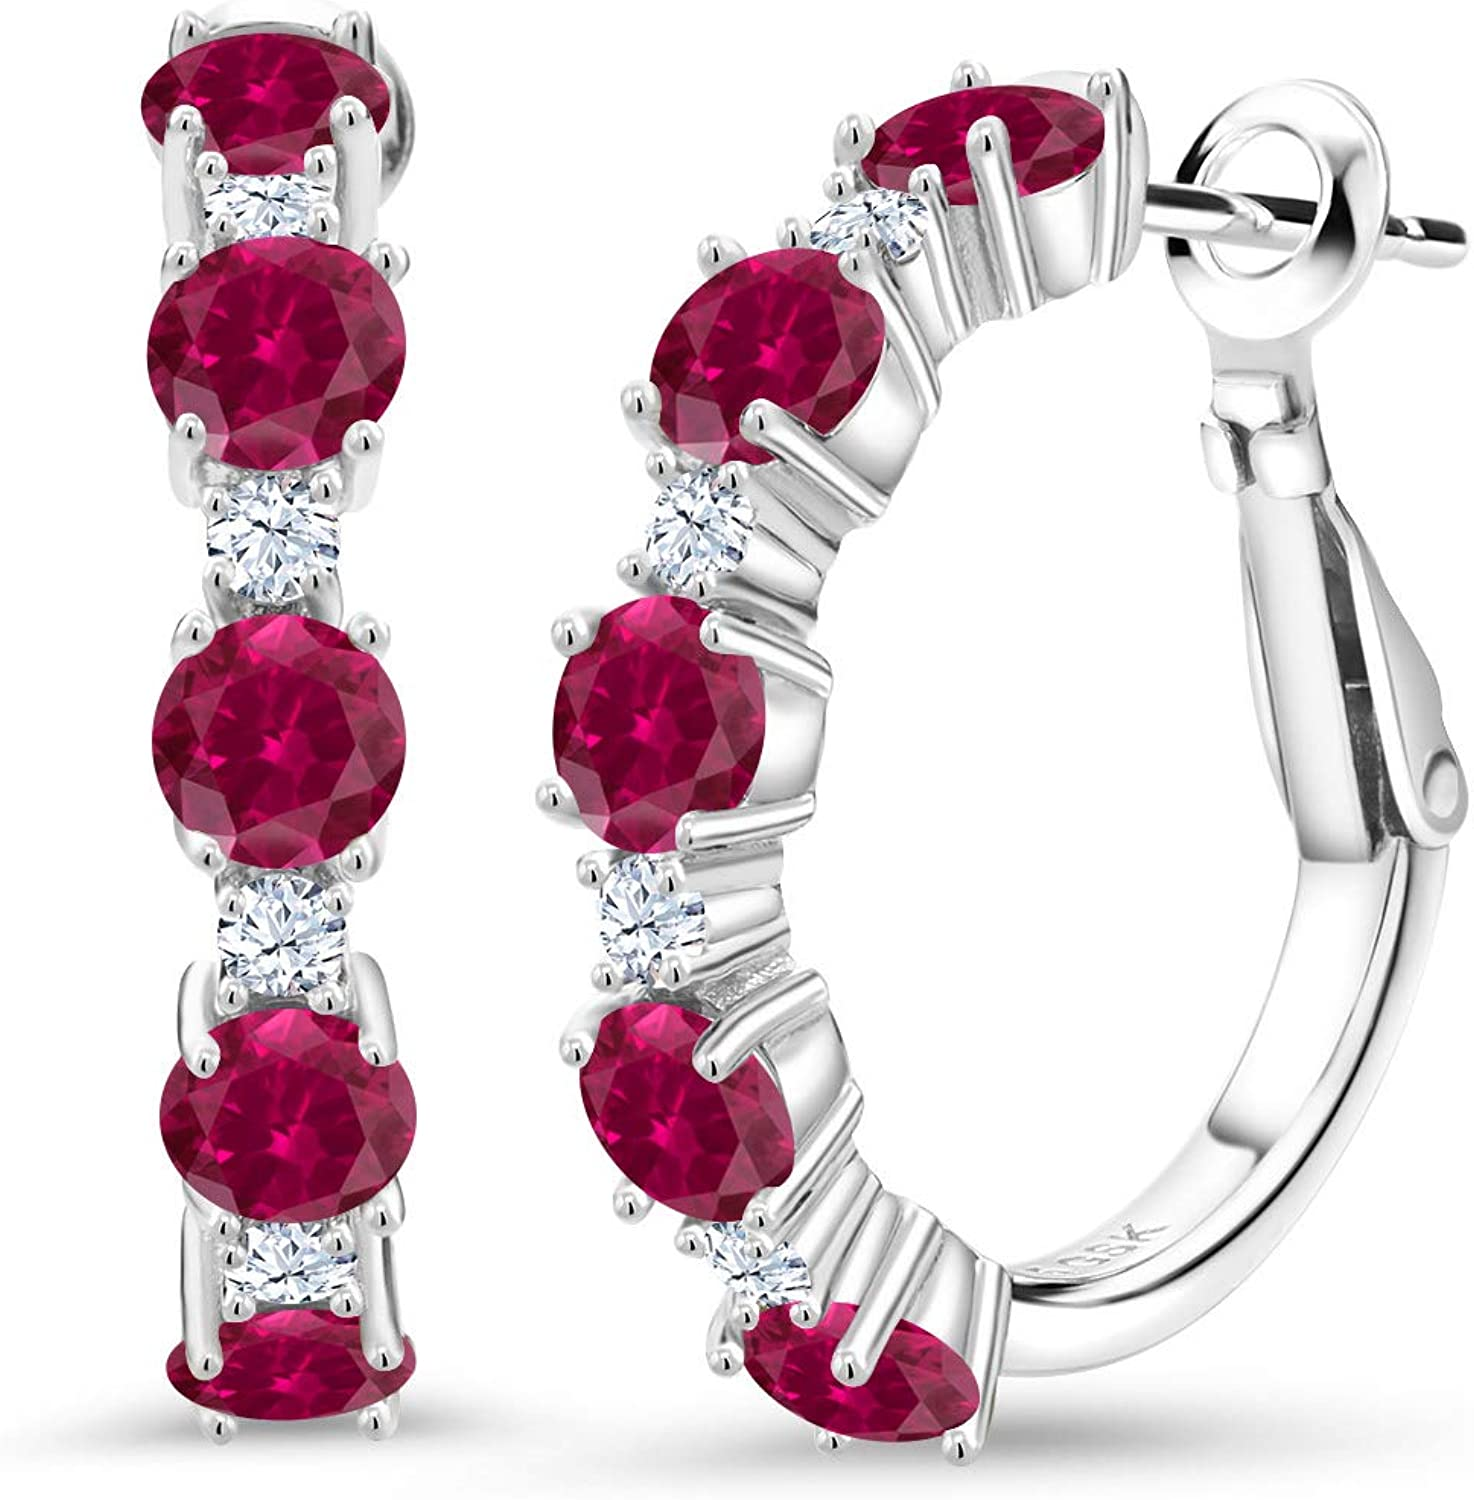 CZ Bracelet// Bangle Red Ruby Stunning Solid 925 Sterling Silver box